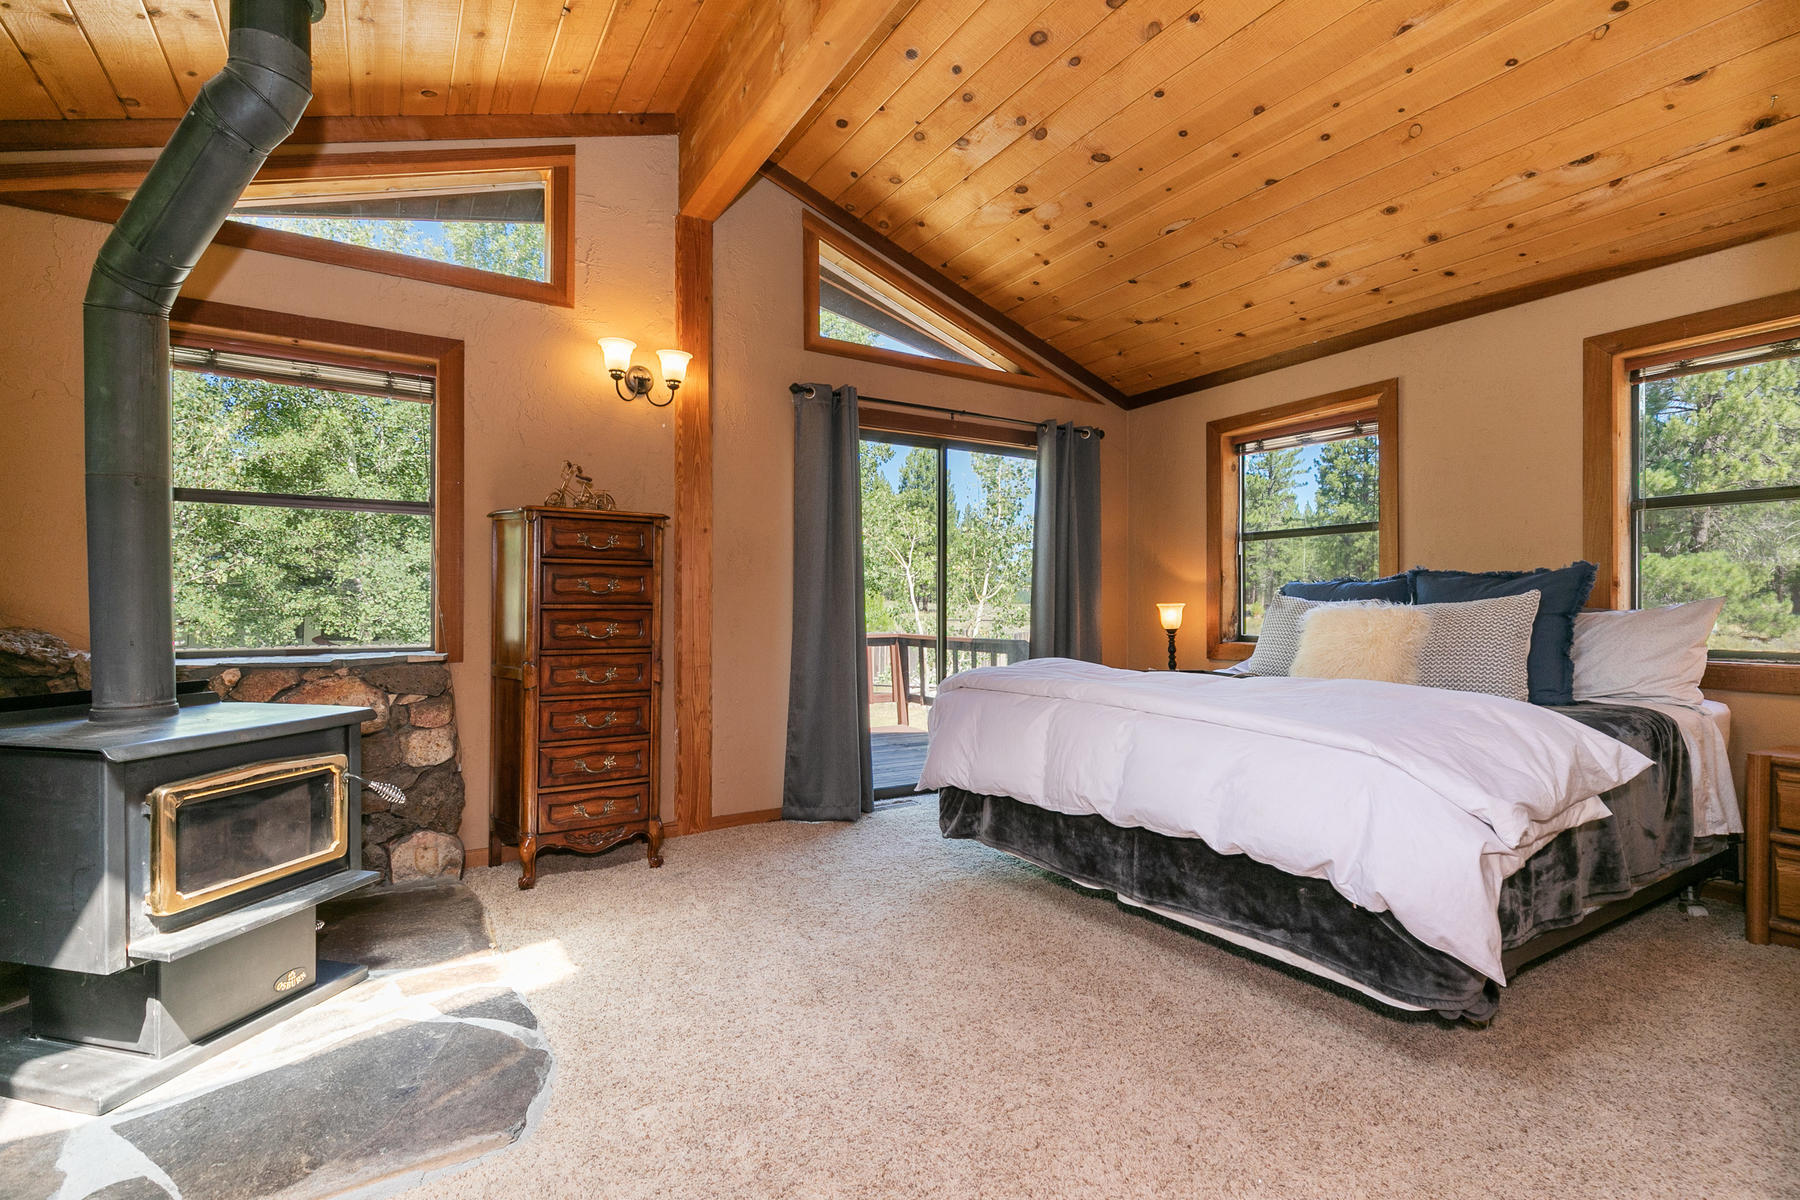 Additional photo for property listing at 14982 Glenshire Drive, Truckee, CA 14982 Glenshire Drive 特拉基, 加利福尼亚州 96161 美国